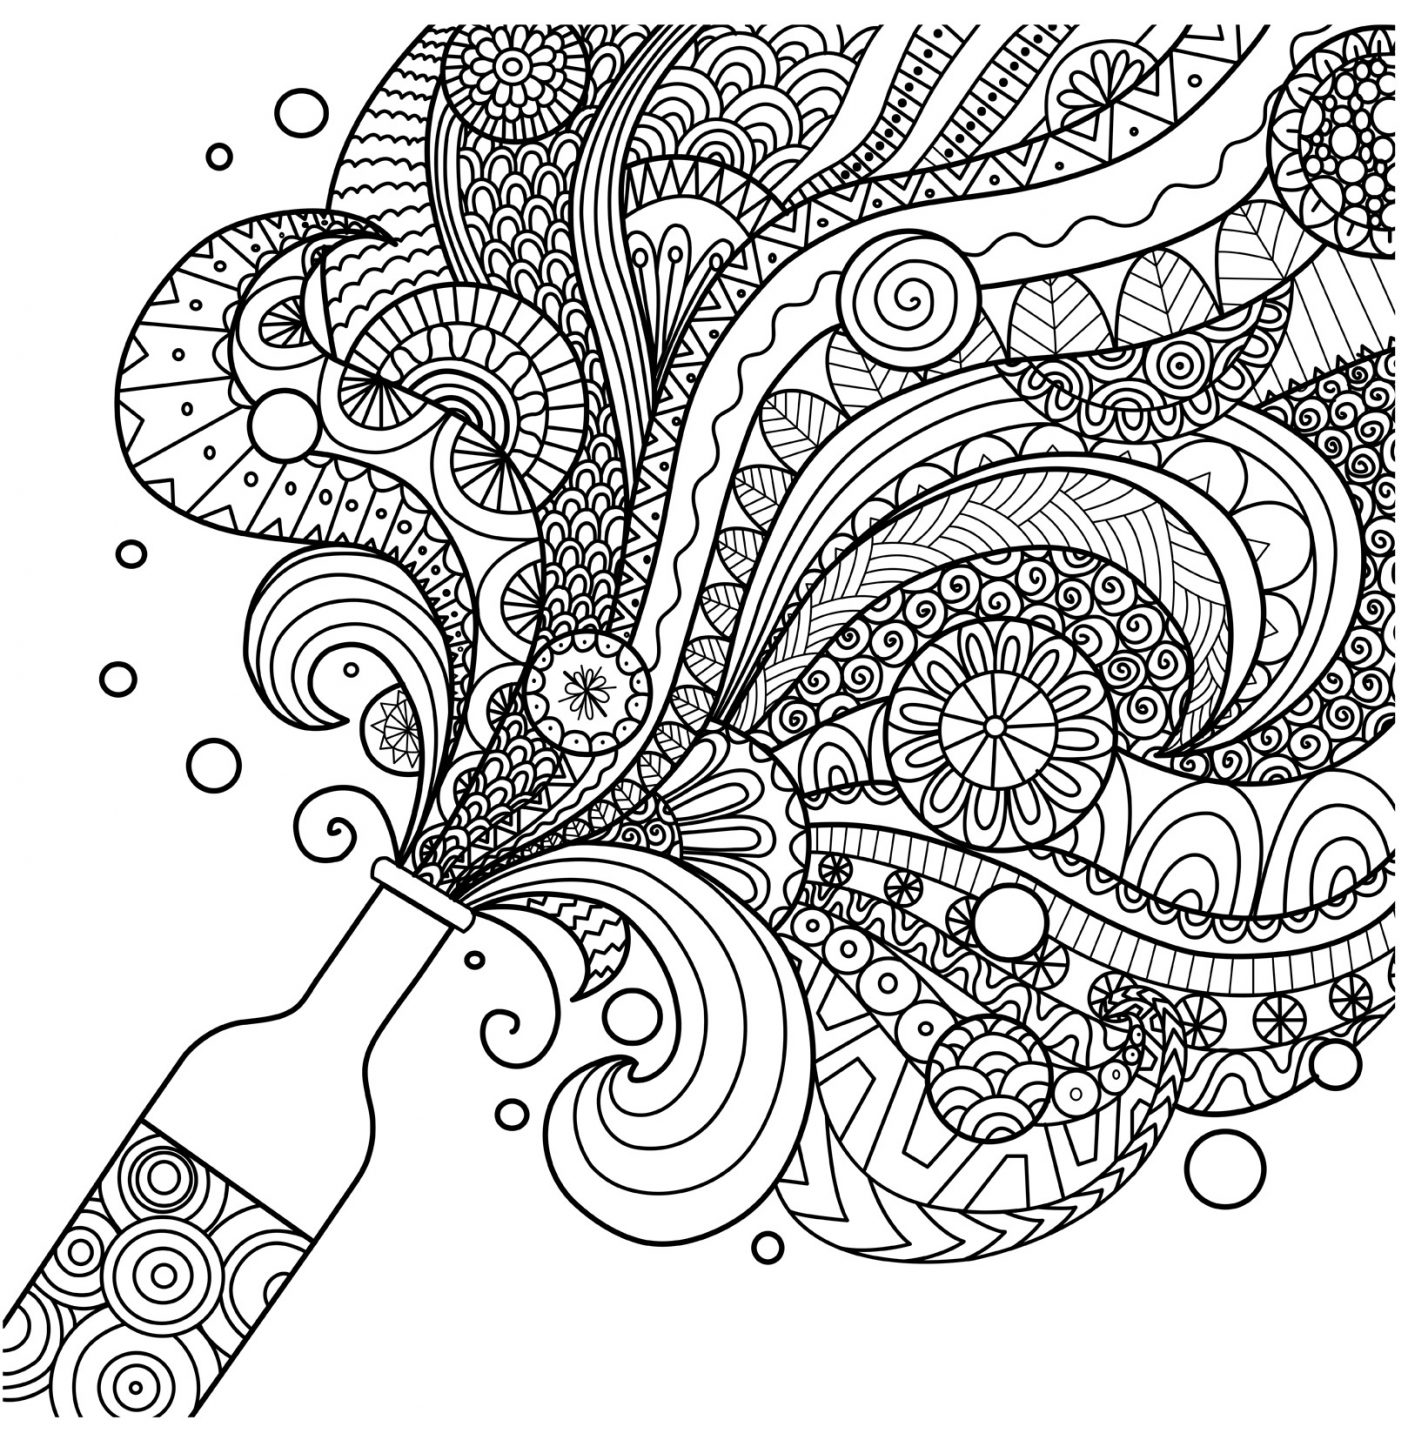 Line And Art Design Srl : Coloriage pour adulte yvecourt vins de bordeaux